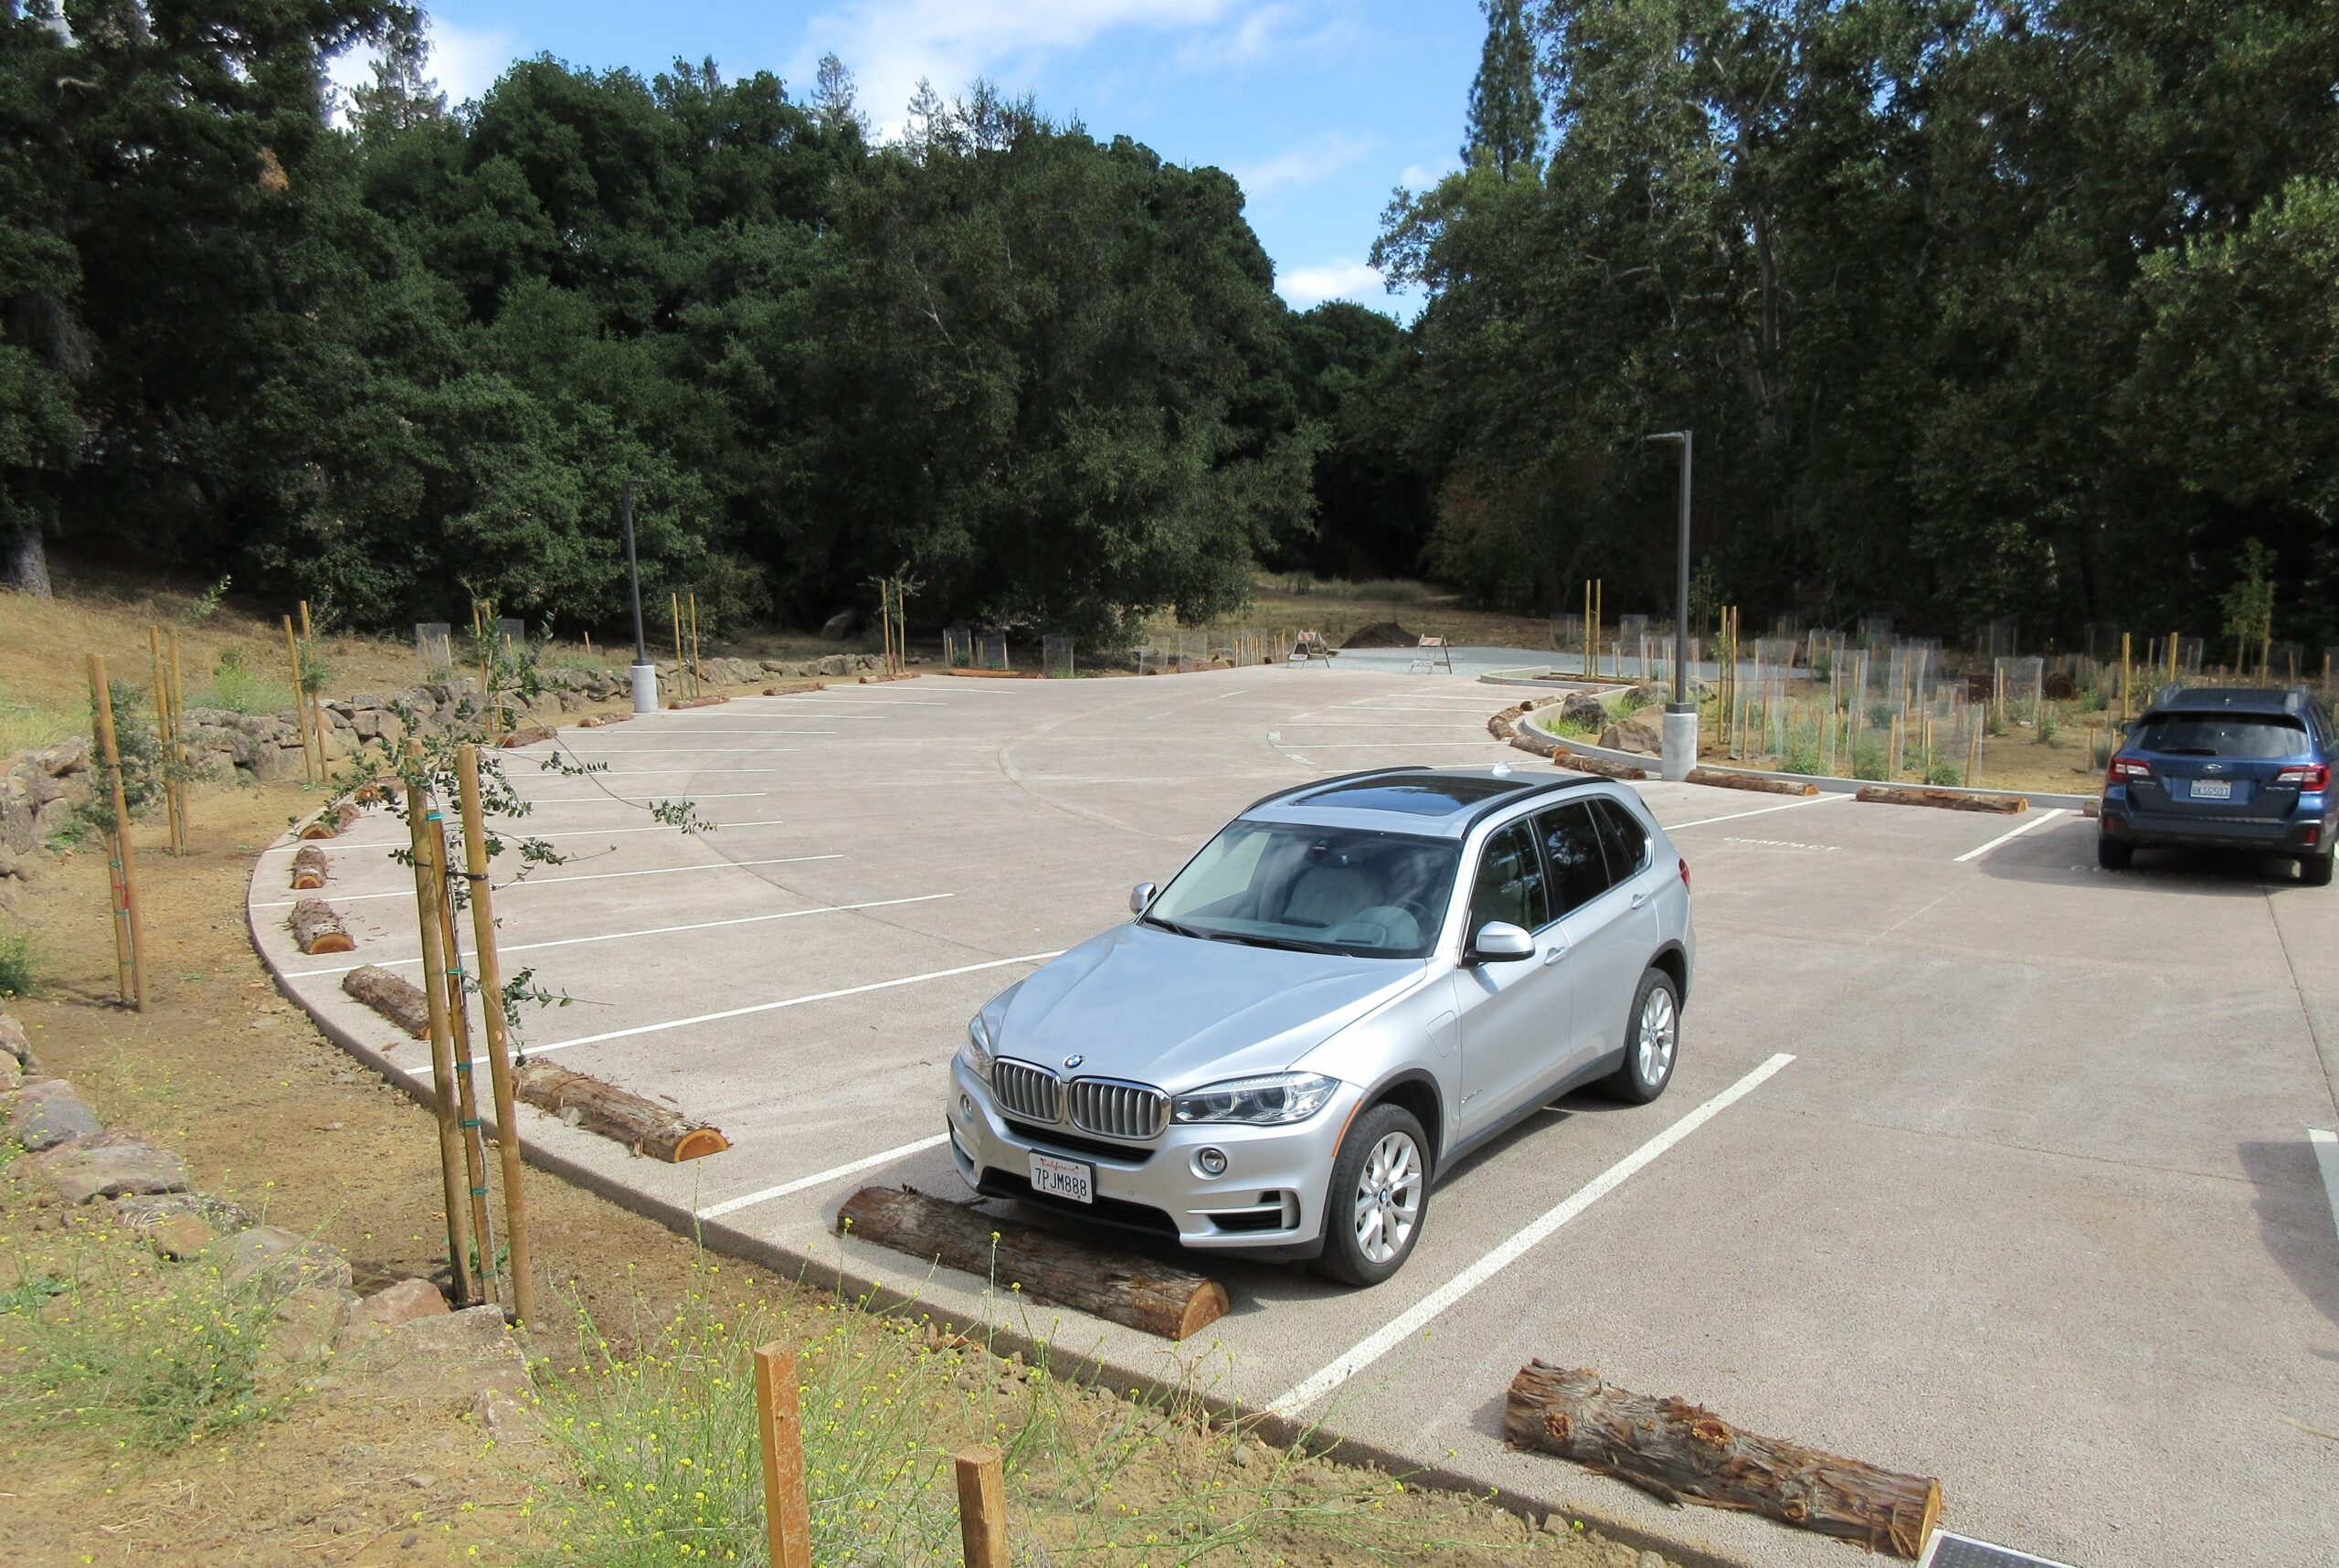 McClellan Ranch Preserve Parking Lot, Cupertino